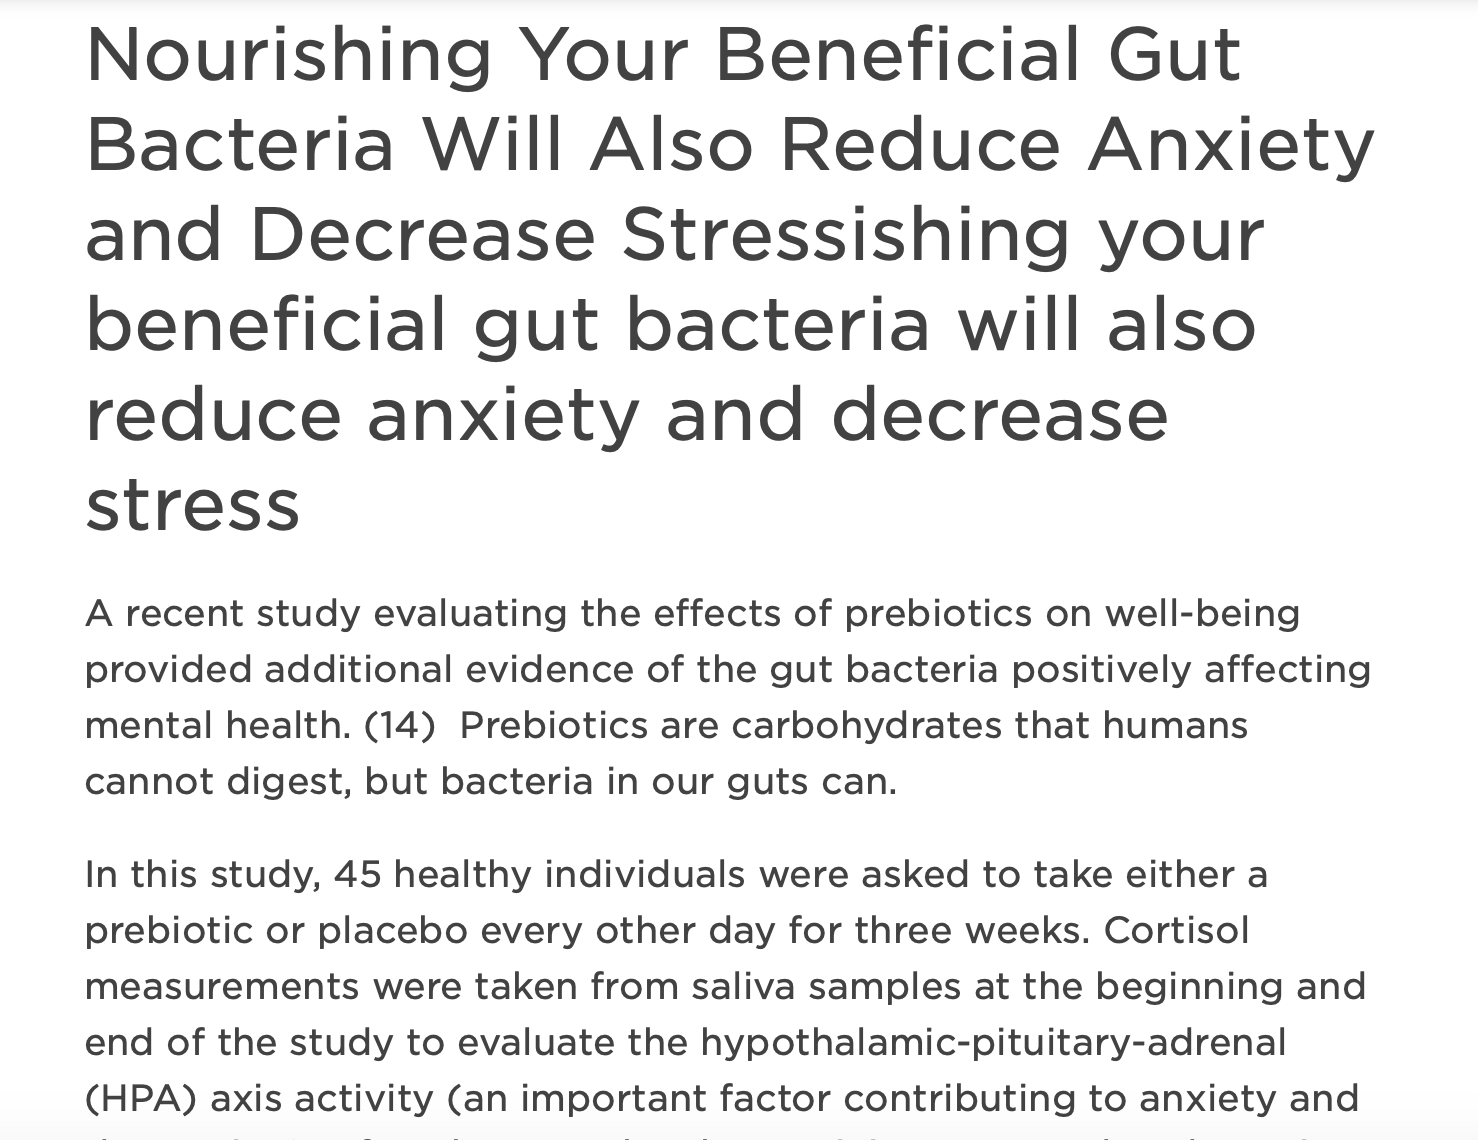 Uplift Food prebiotics gut health chris kresser psychobiotic education